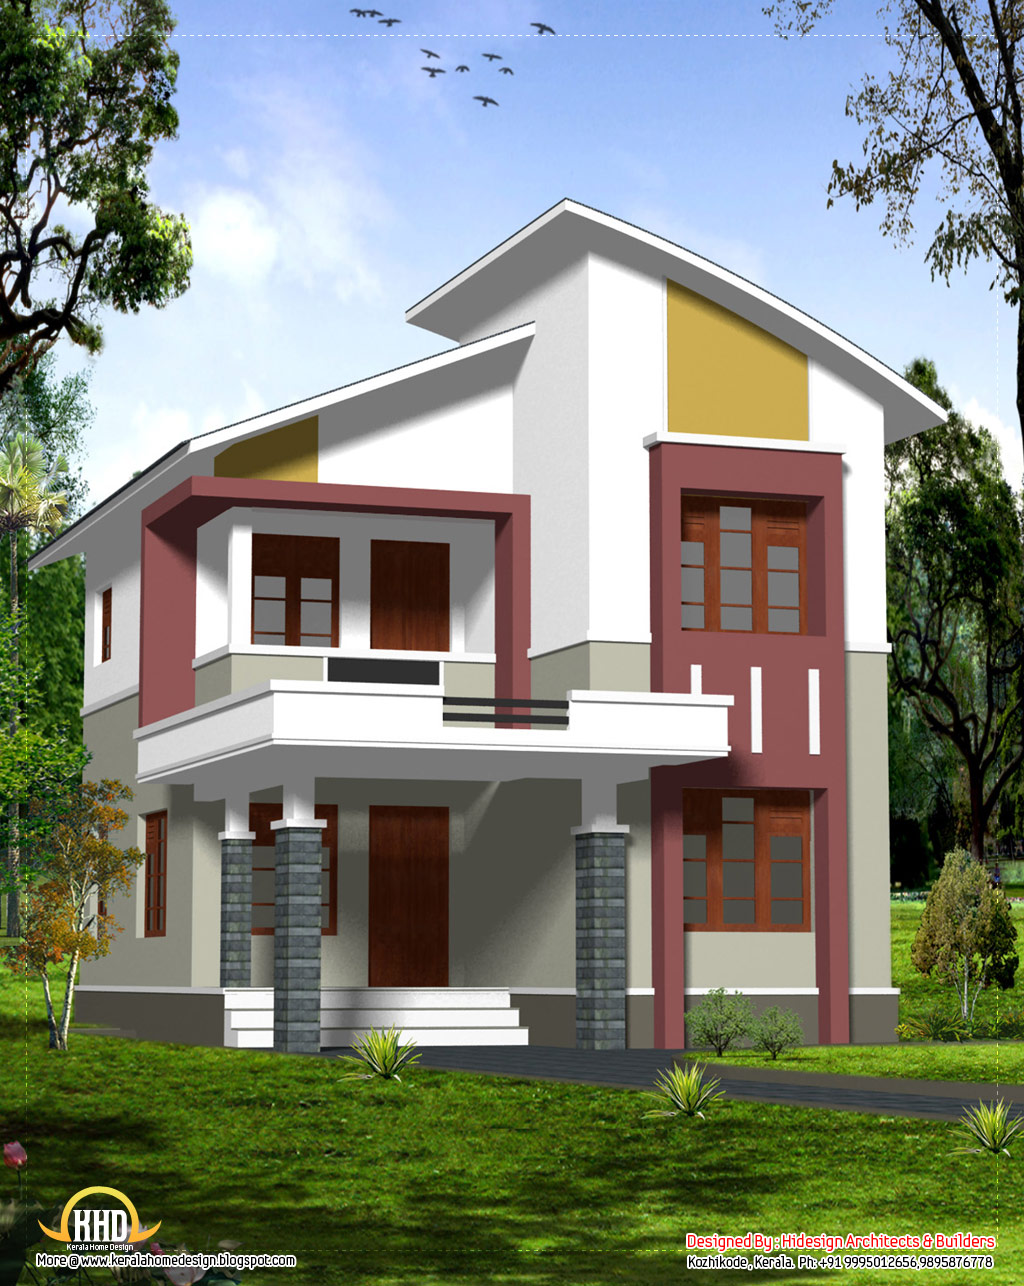 Budget home design 2140 sq ft kerala home design and for Home designs in kerala